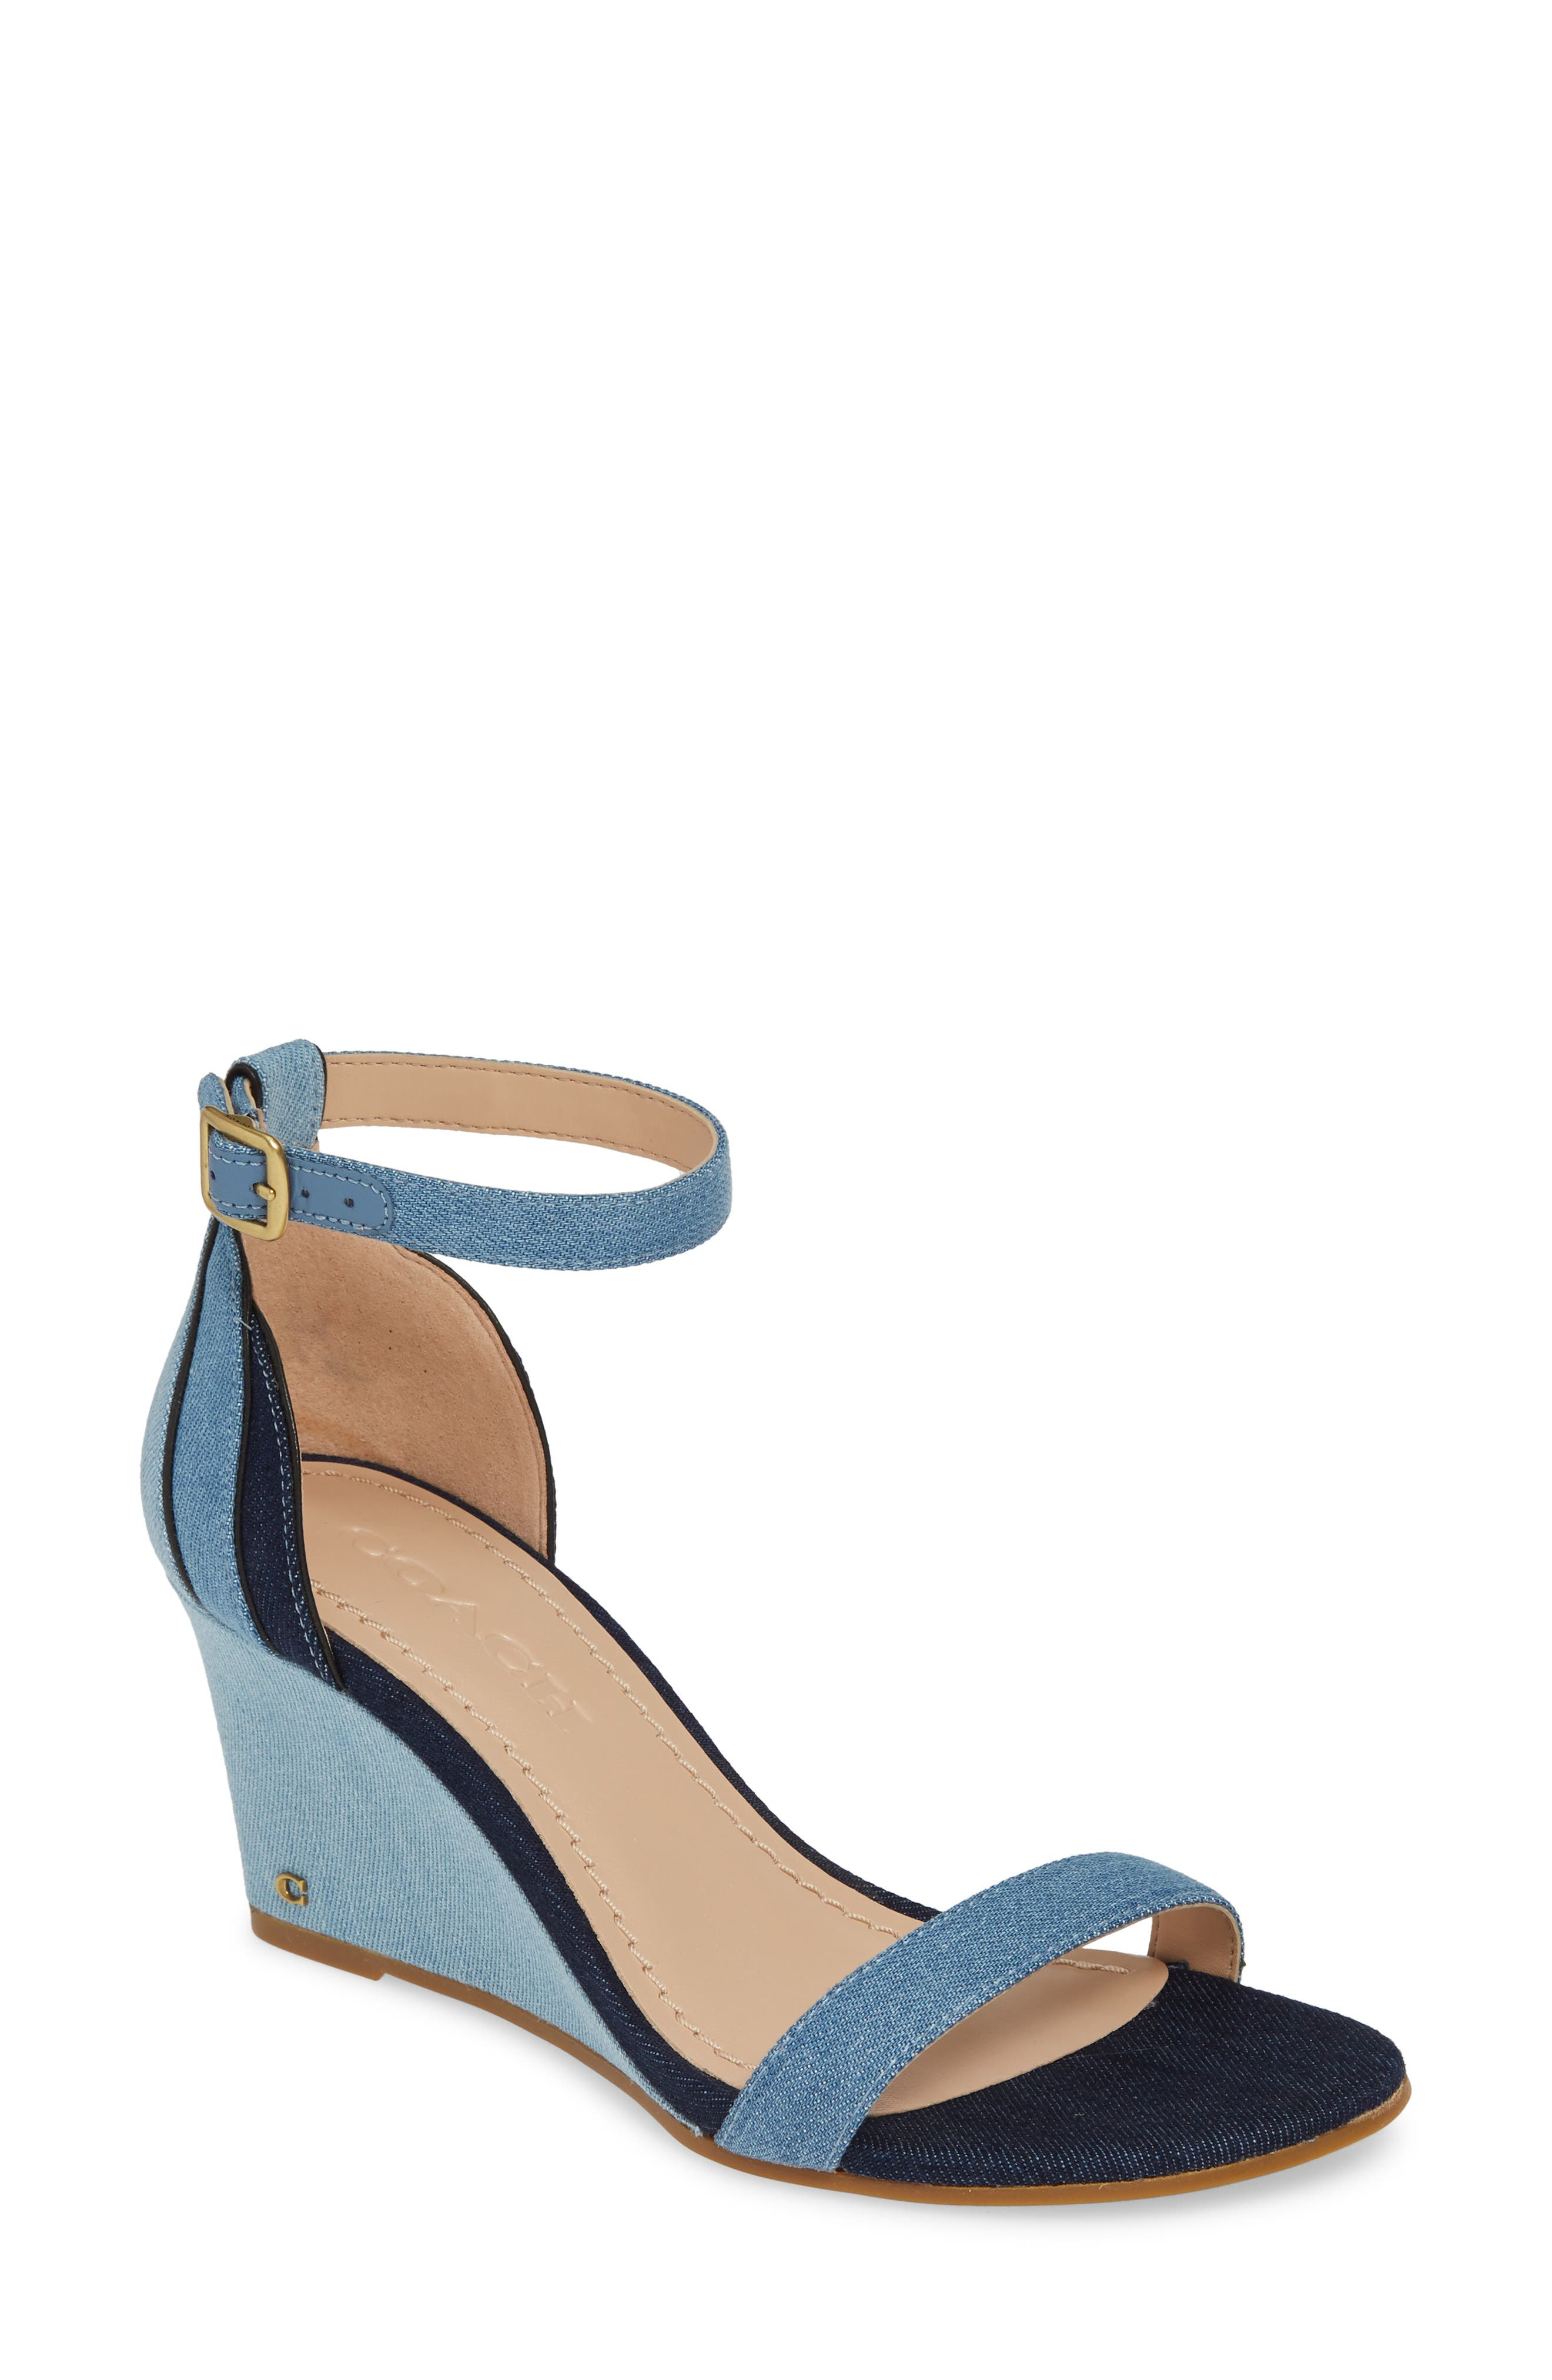 Olive Wedge Sandal, Main, color, DENIM MULTI LEATHER